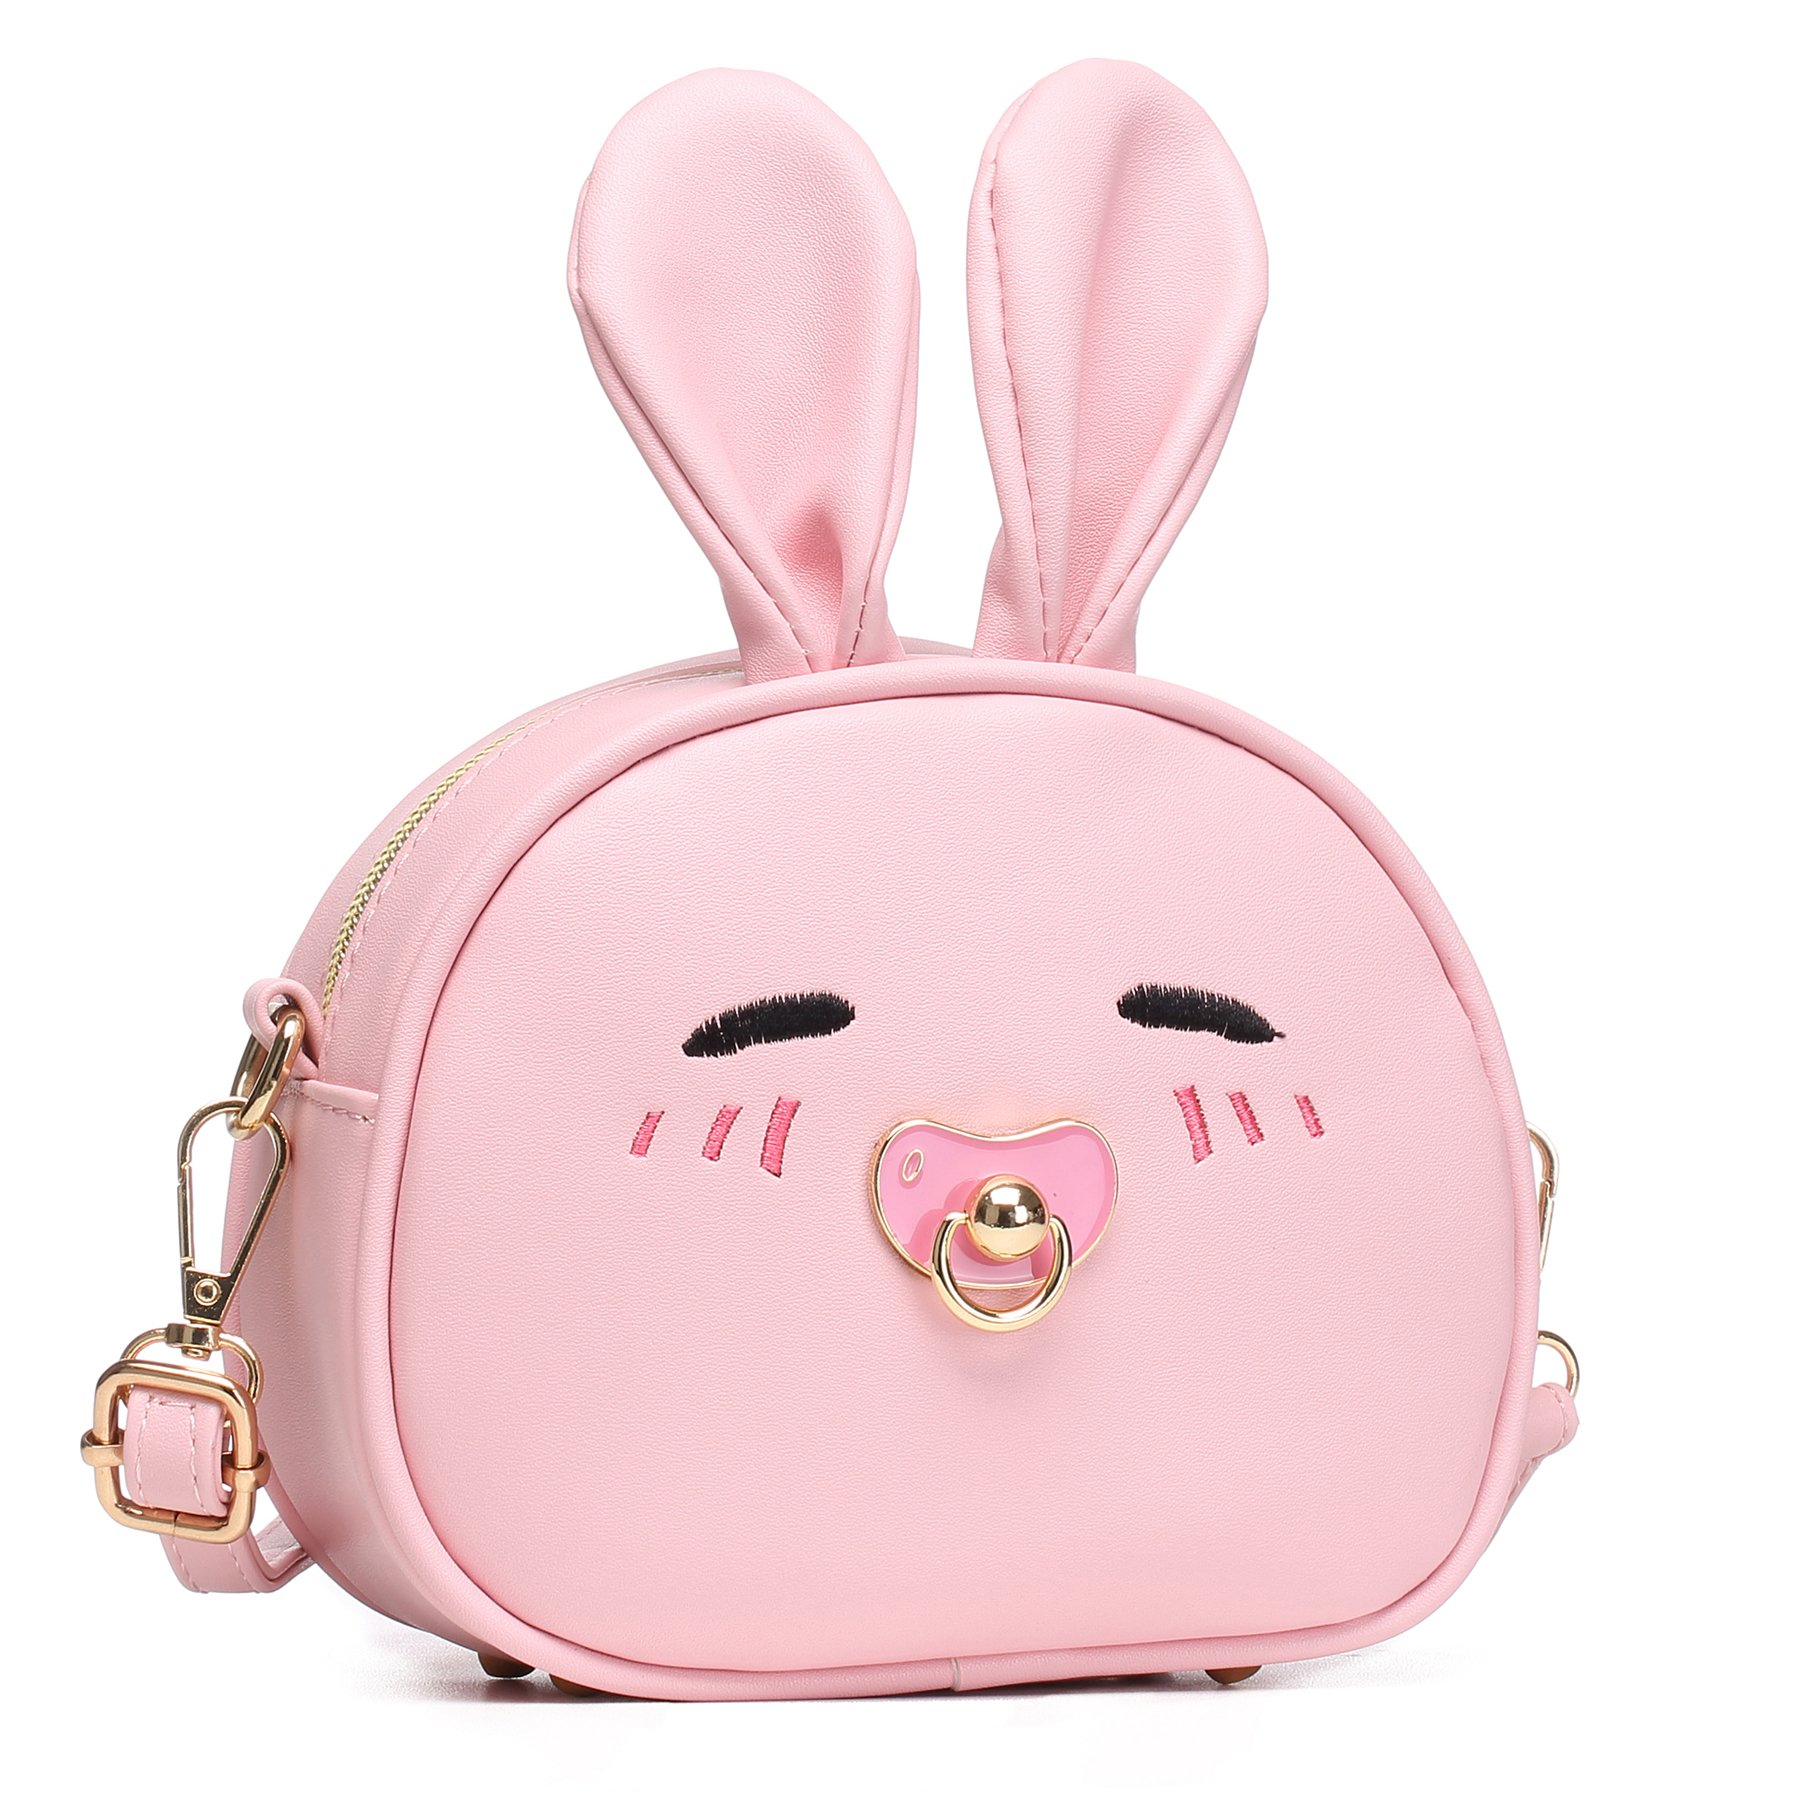 CMK Trendy Kids My First Purse for Toddler Kids Girls Cute Shoulder Bag Messenger Bags with Bunny Ear and Double Slide Zipper Novelty Birthday Gift (82011_Pink) by CMK Trendy Kids (Image #2)